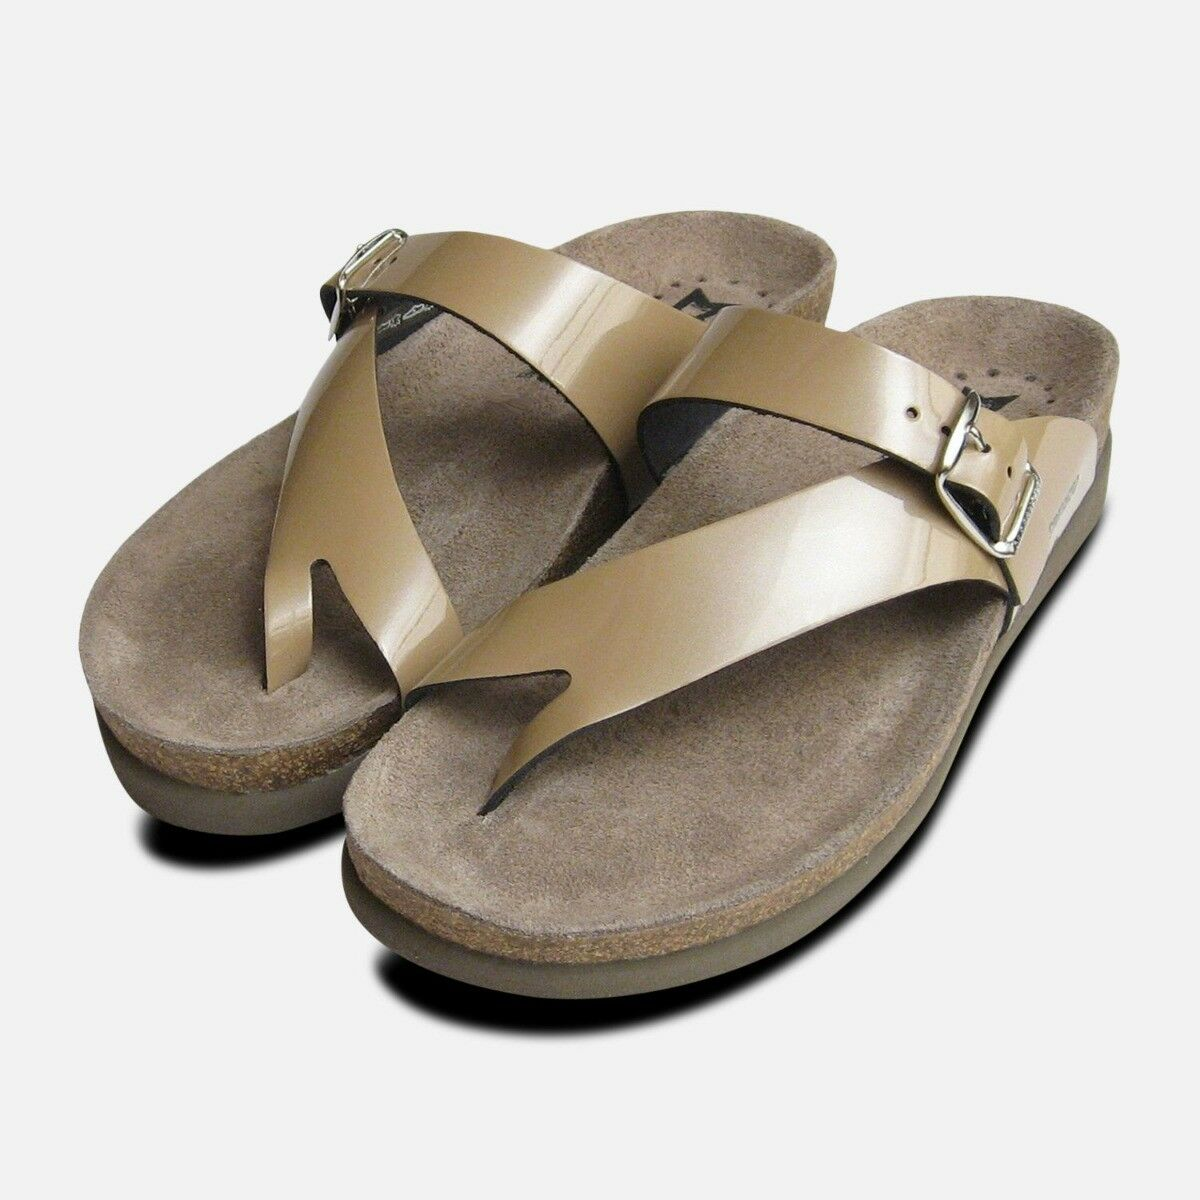 Ladies Helen in Nude Patent Leather Mephisto Sandals